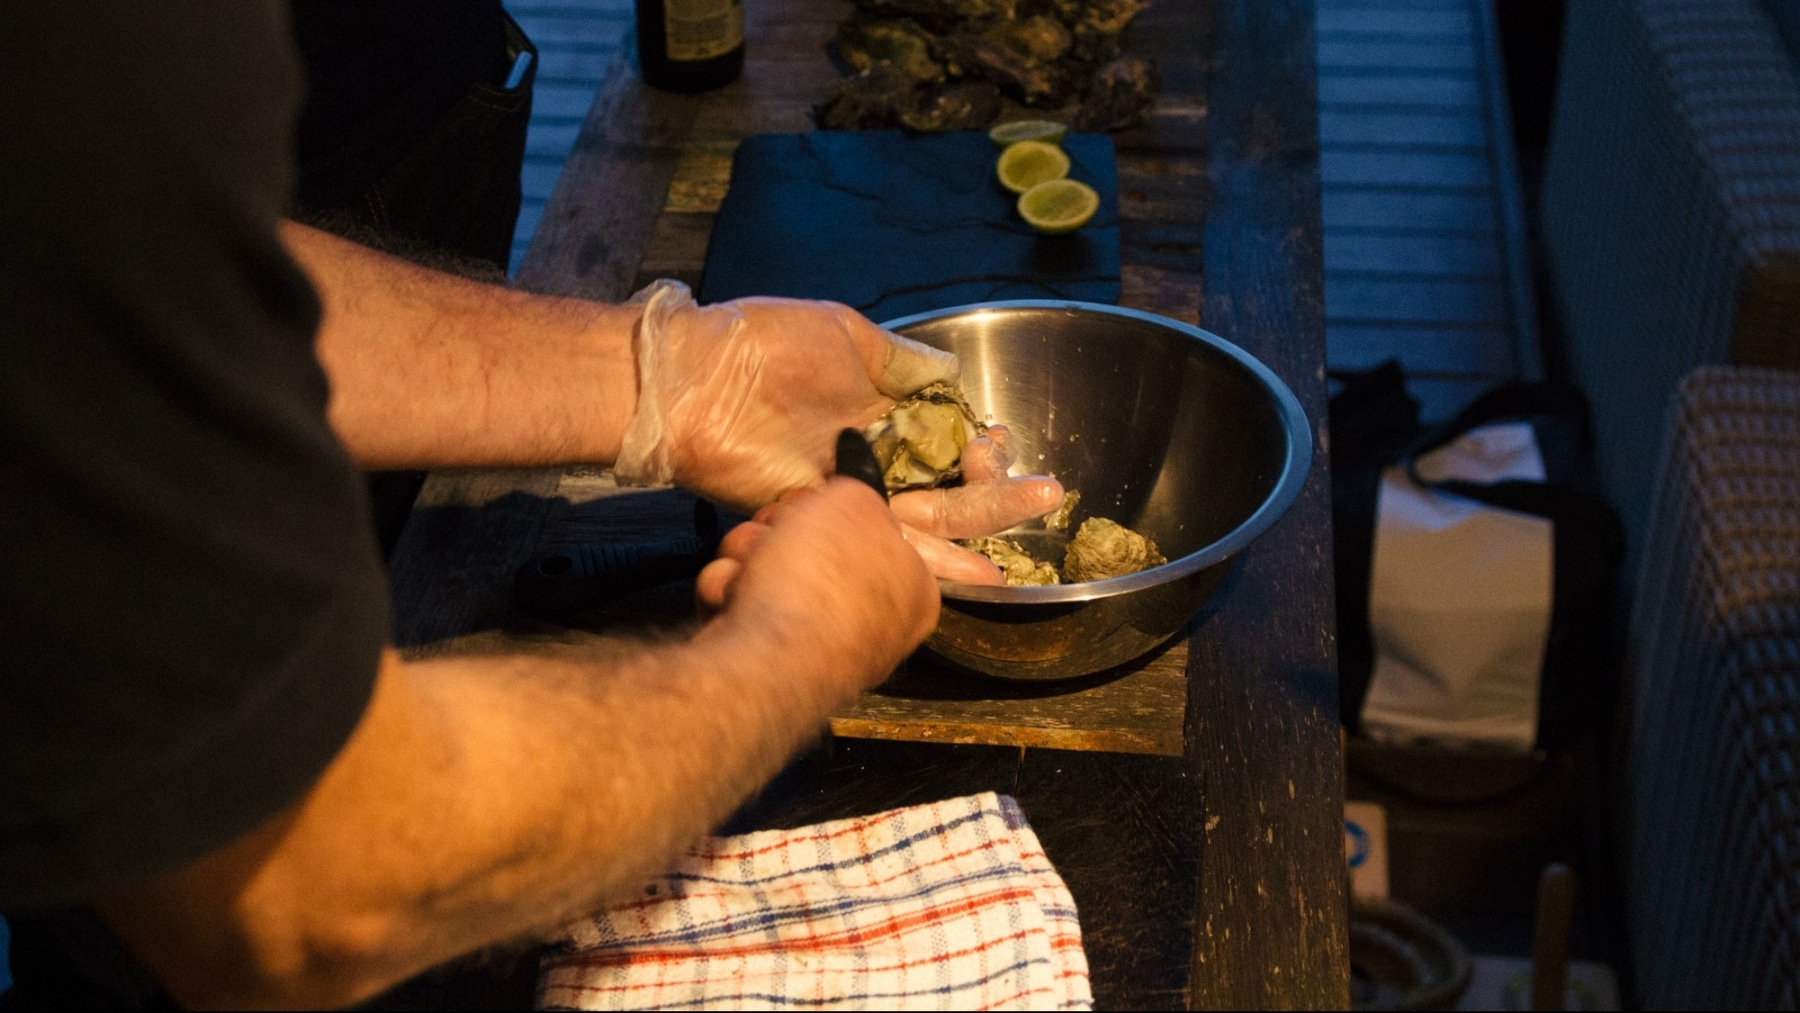 Hands shucking oysters